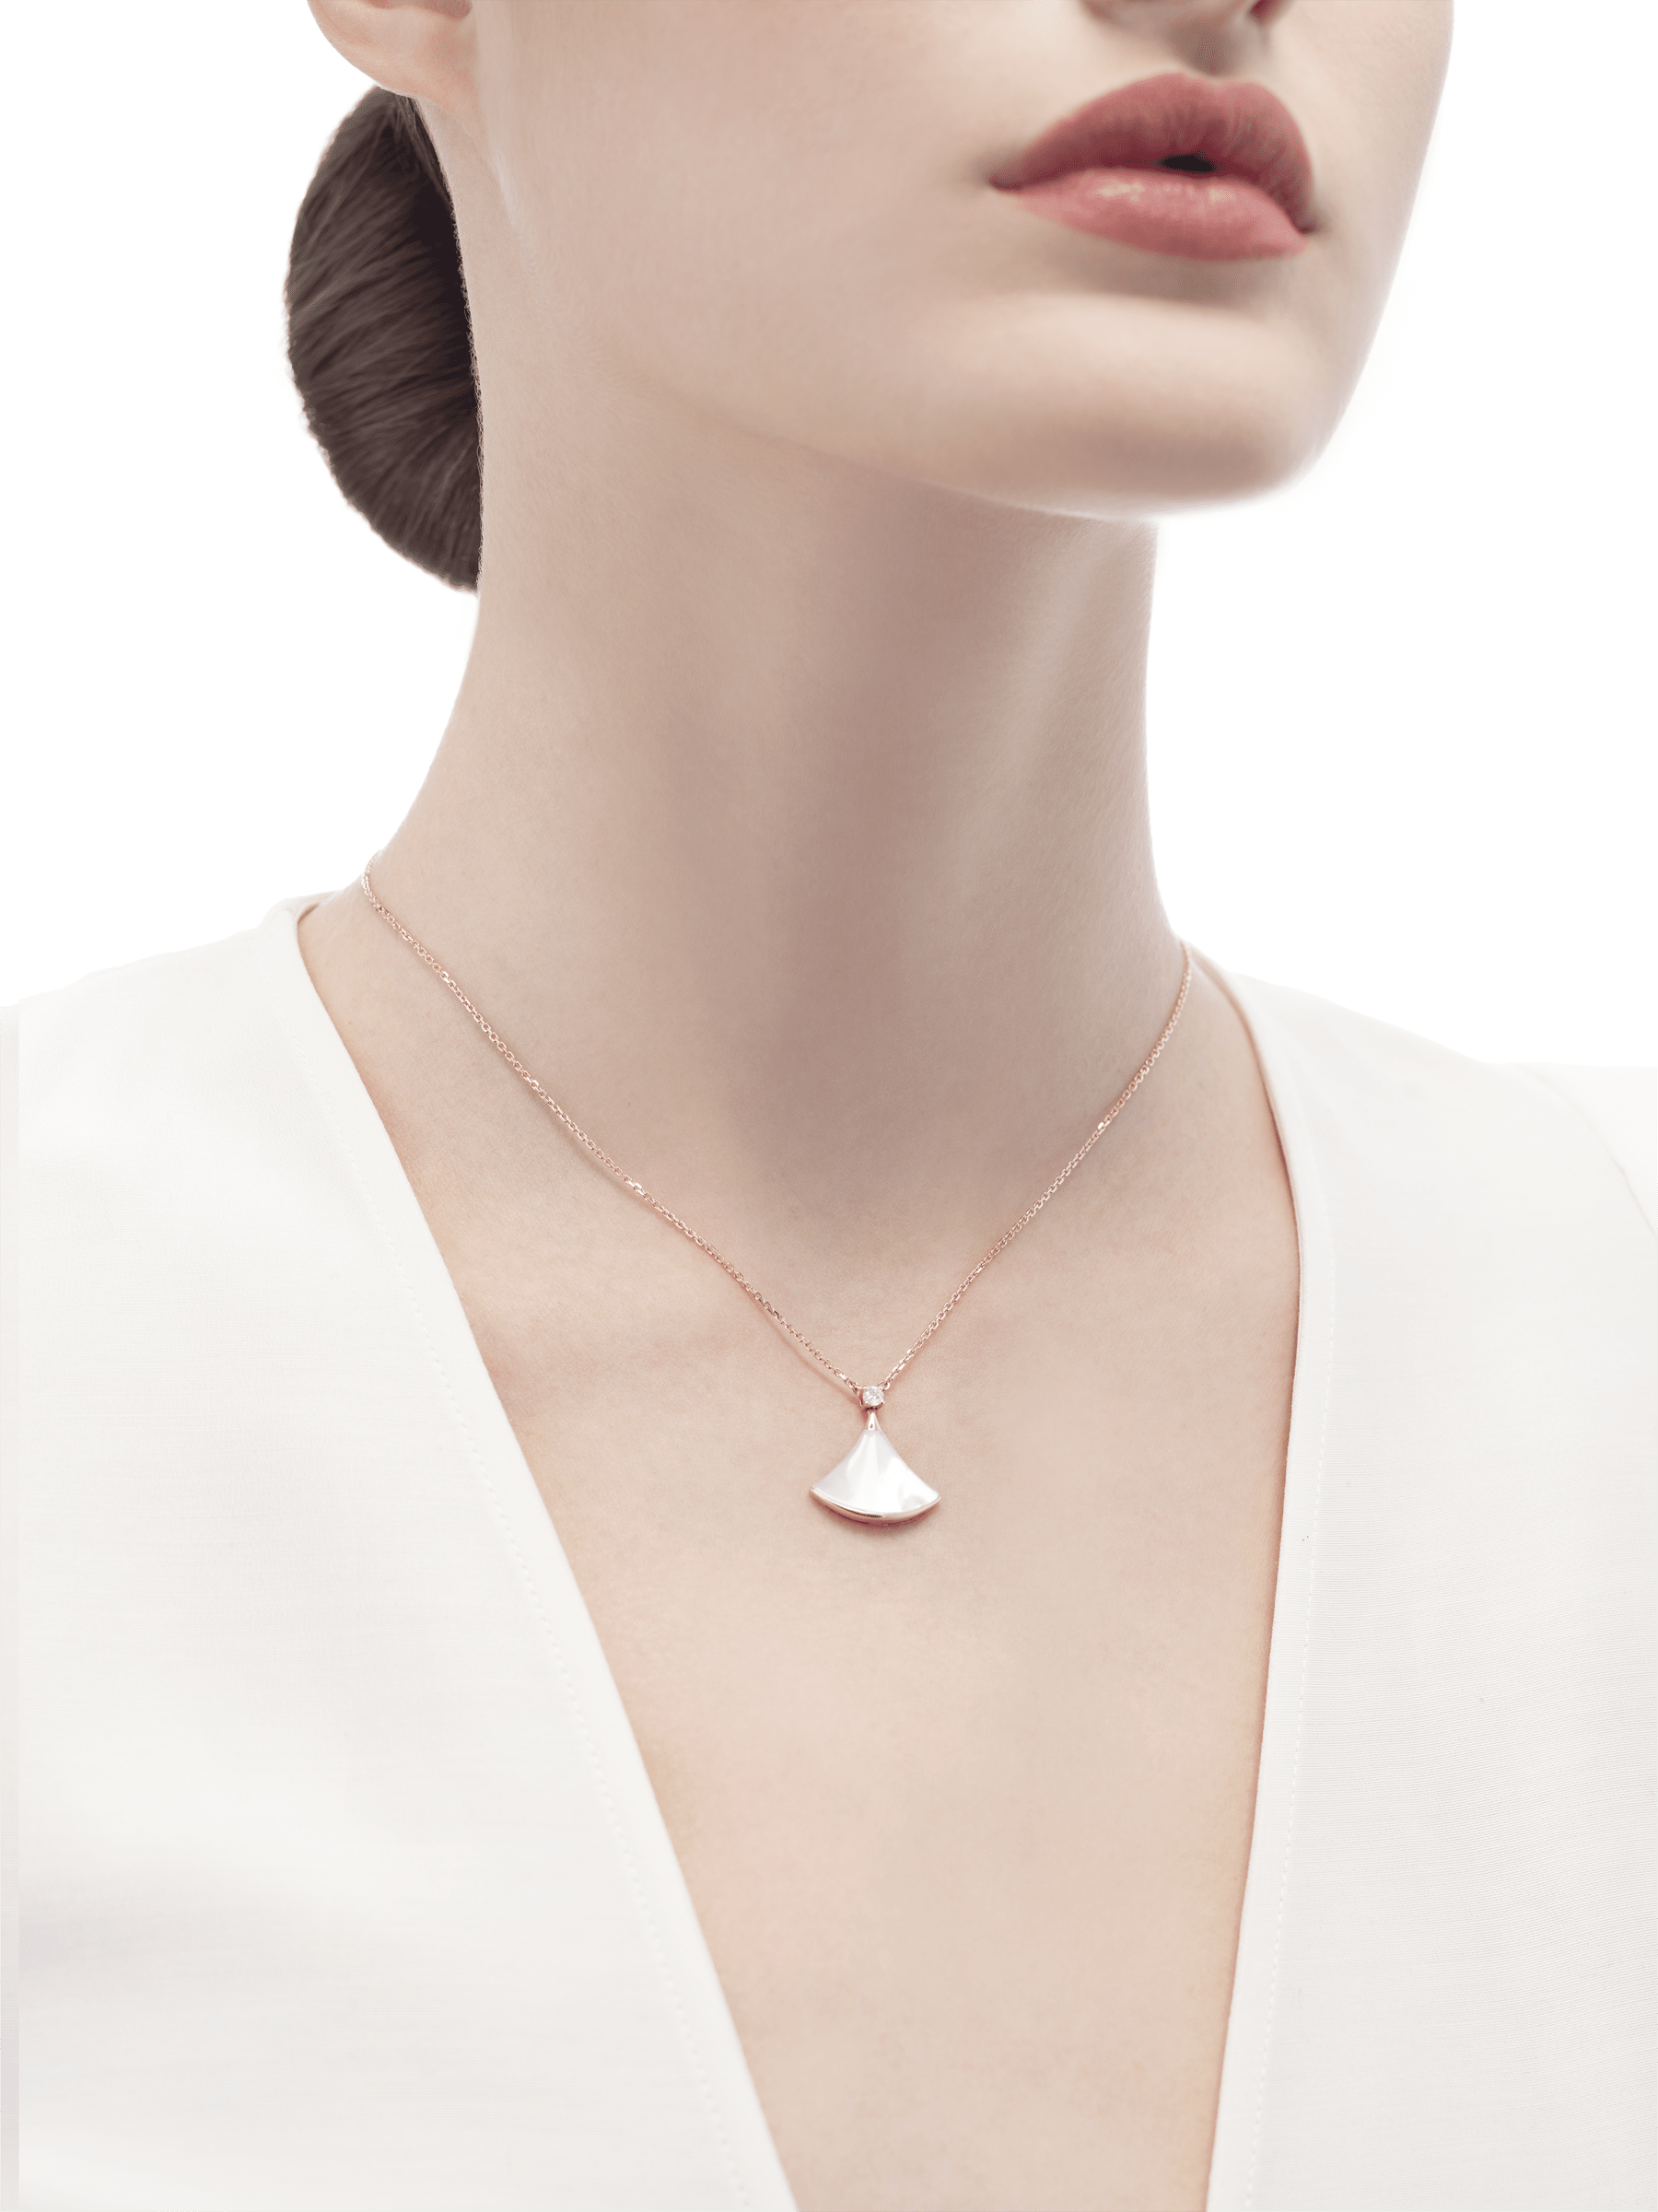 DIVAS' DREAM necklace in 18 kt rose gold with 18 kt rose gold pendant set with one diamond and mother-of-pearl. 350581 image 3